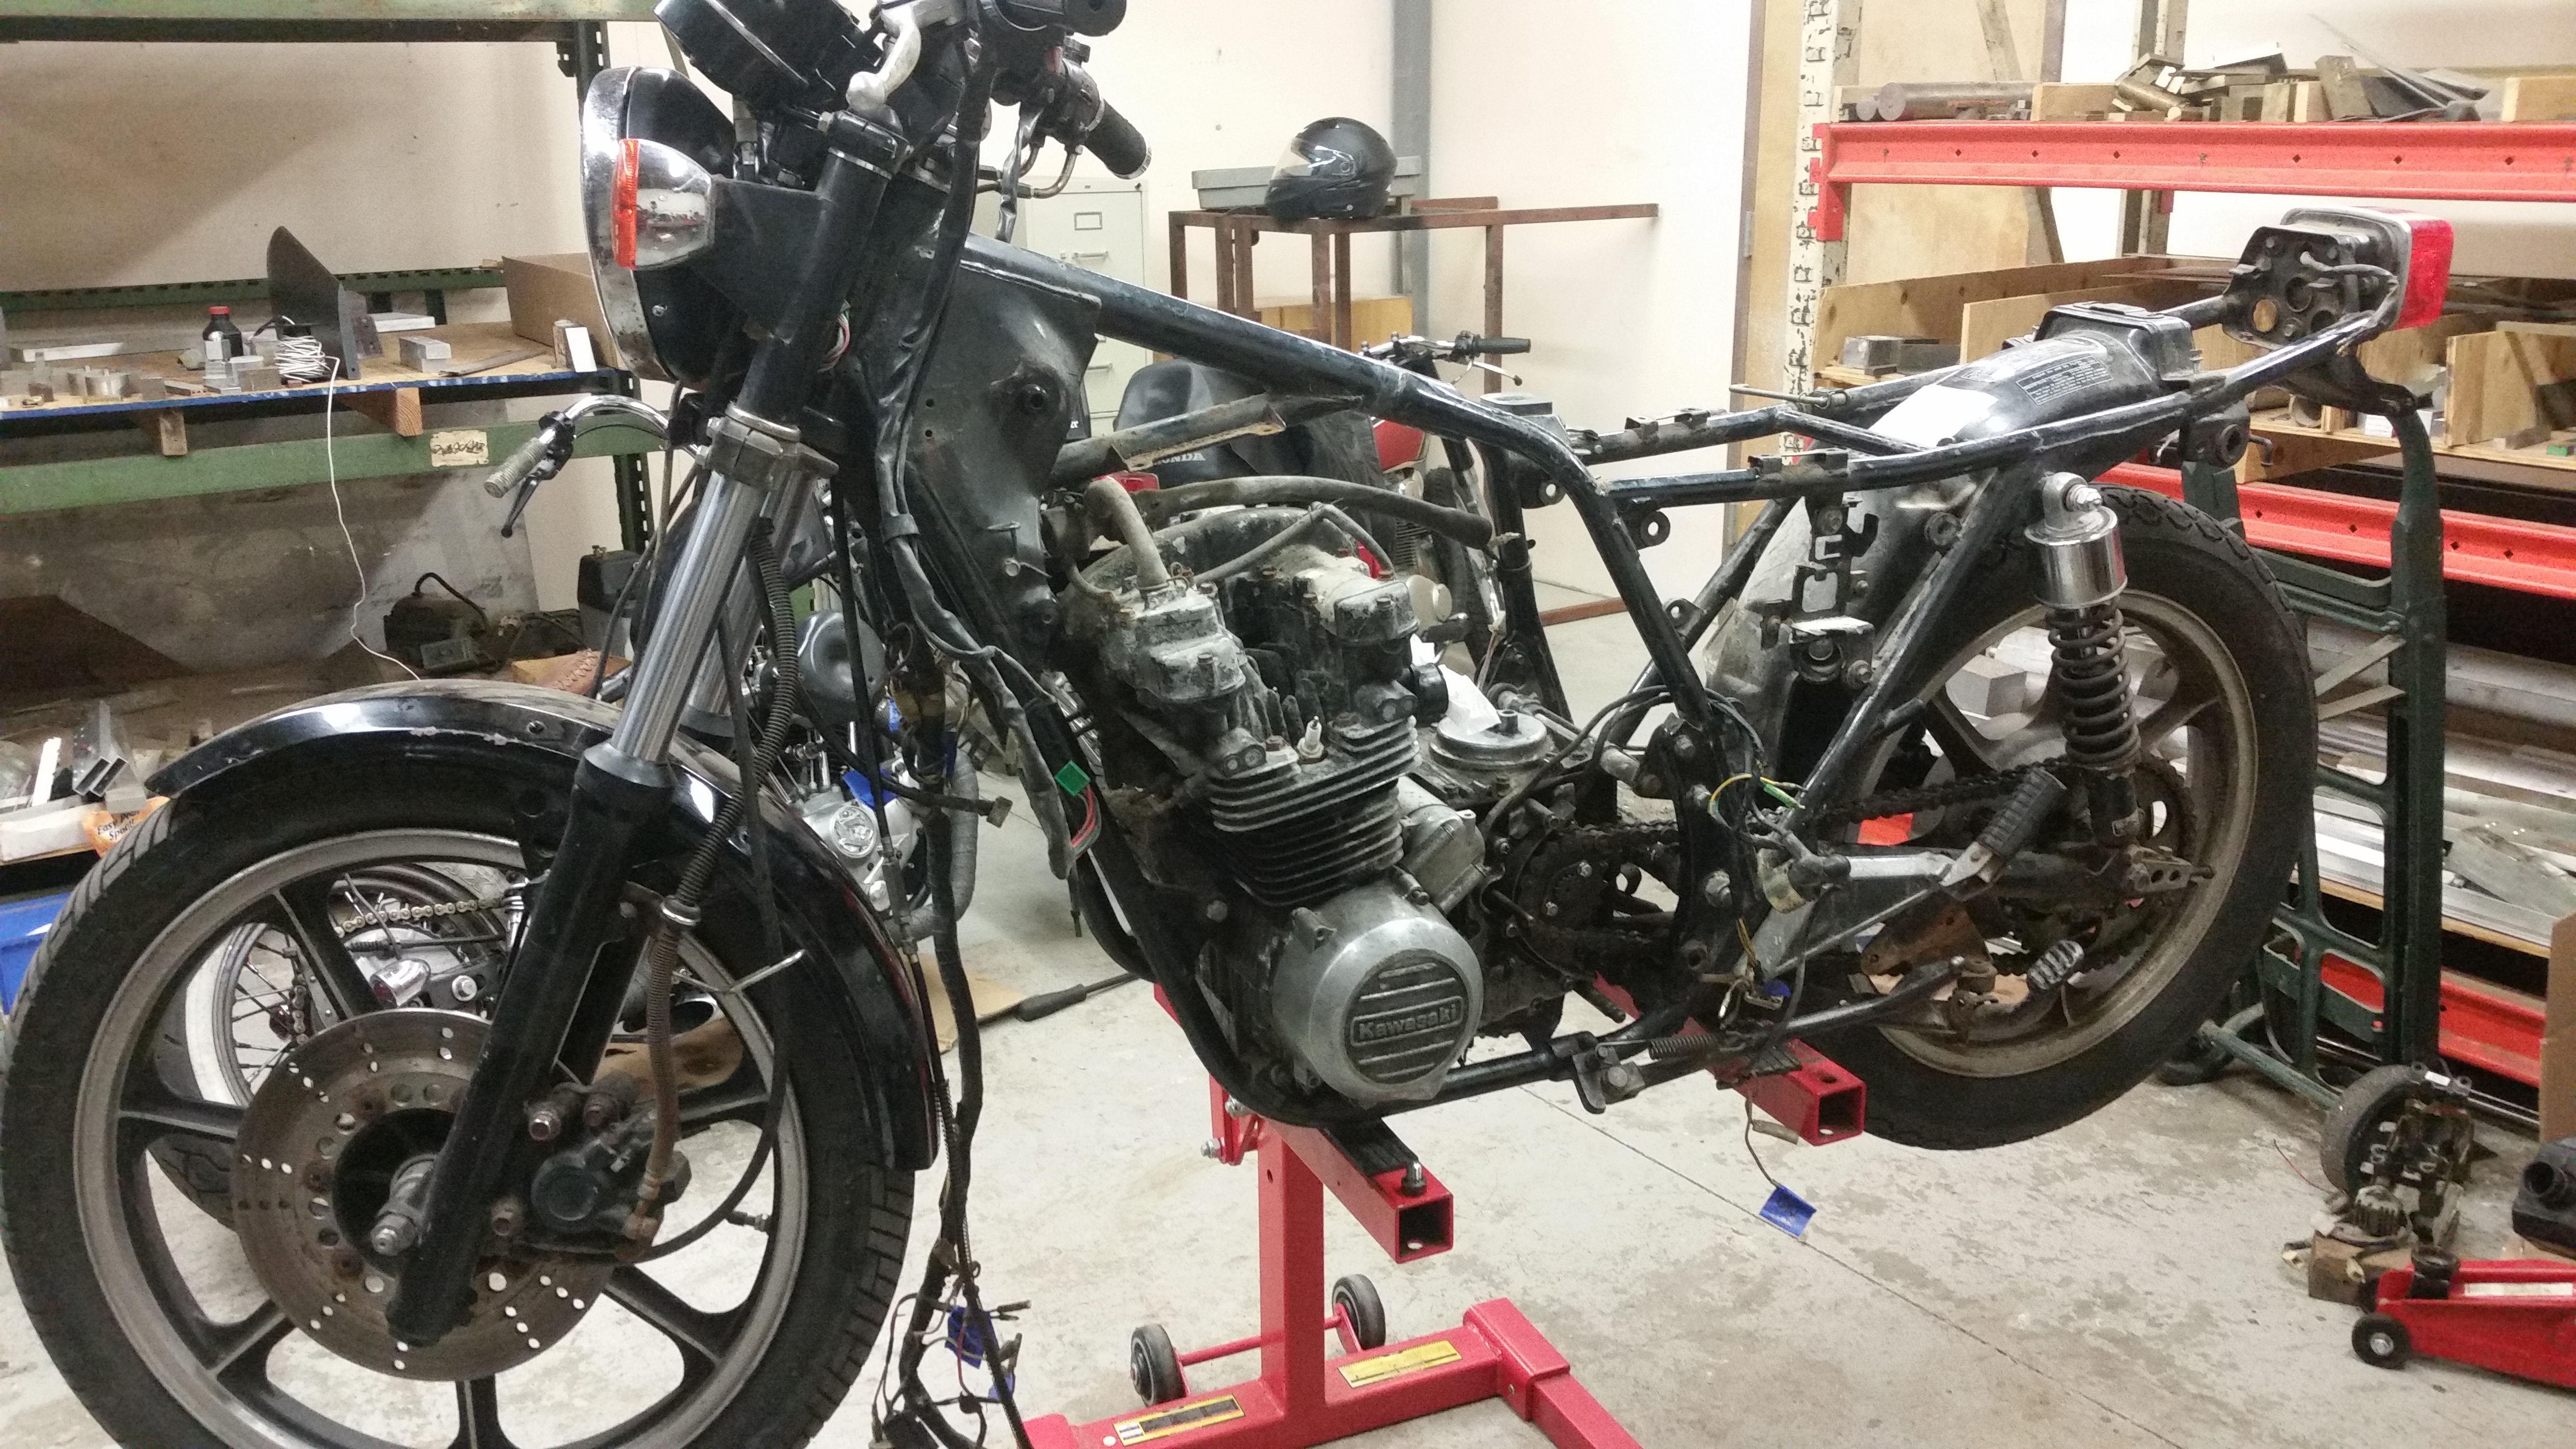 shop up date: progress on the kz550a cafe racer project - long may